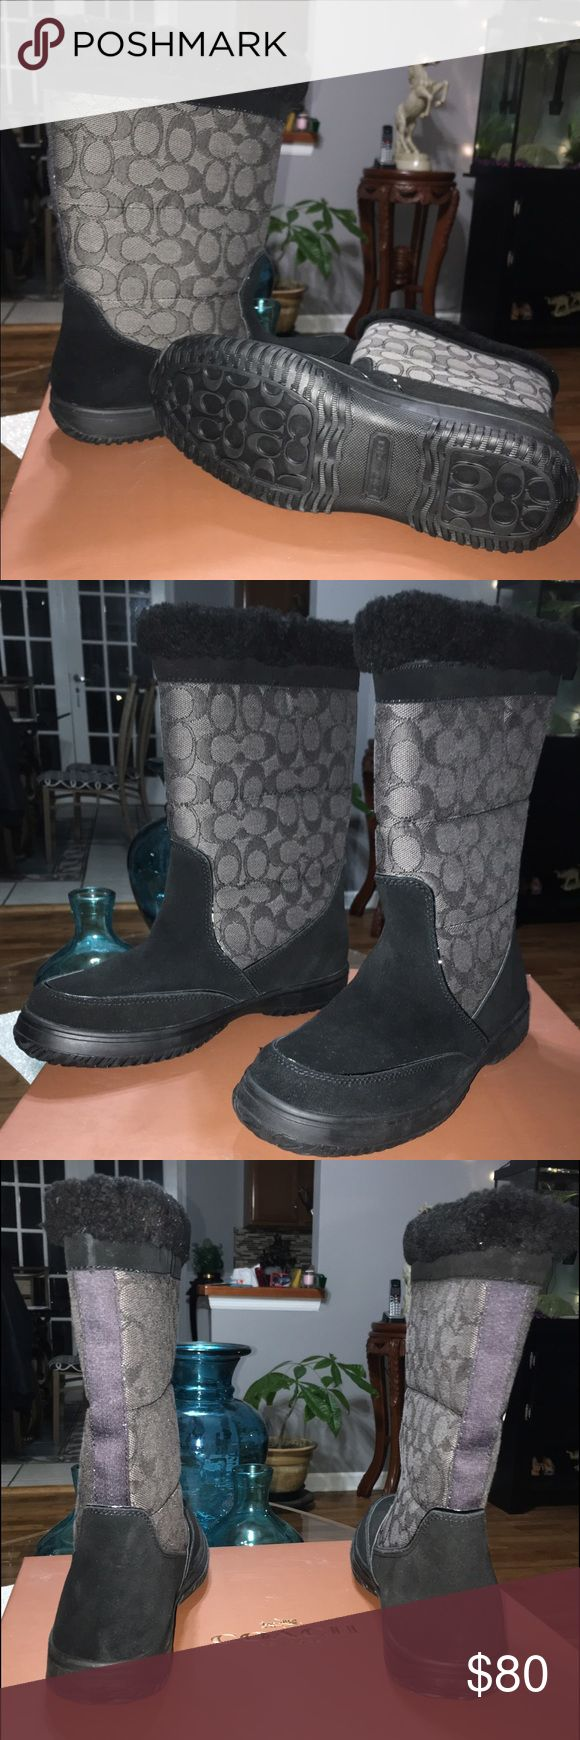 COACH Monogram Black and Grey Winter Boots NWT Brand NEW COACH Monogram Black and Grey Winter Boots in Original box. Never been used. Coach Shoes Winter & Rain Boots